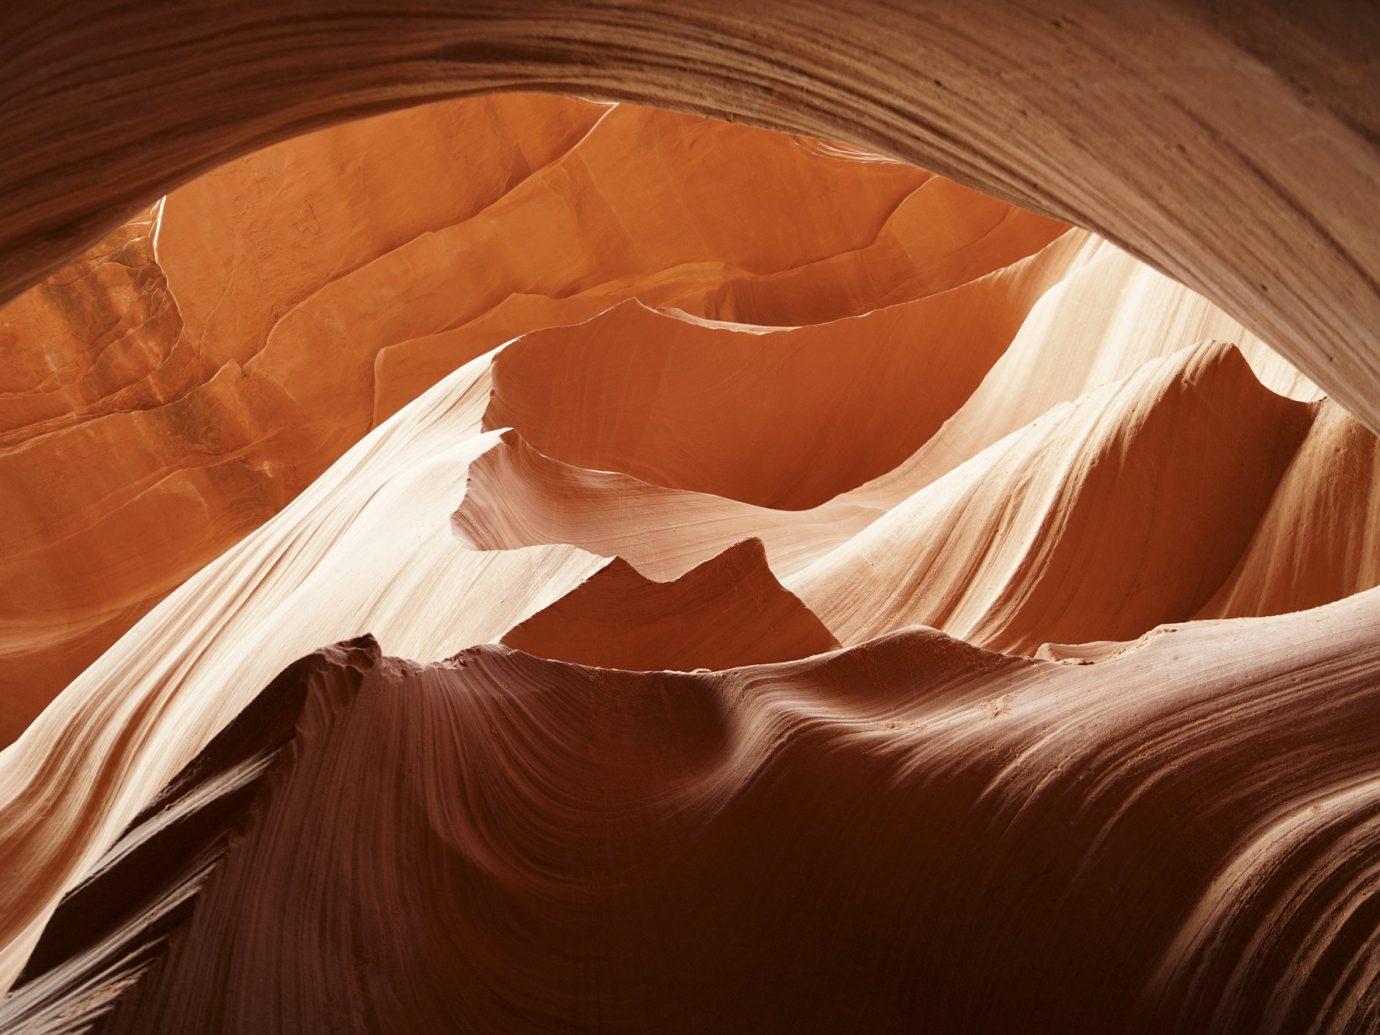 America American Southwest Road Trips indoor light wood Nature sunlight computer wallpaper sky landscape formation canyon stock photography peach